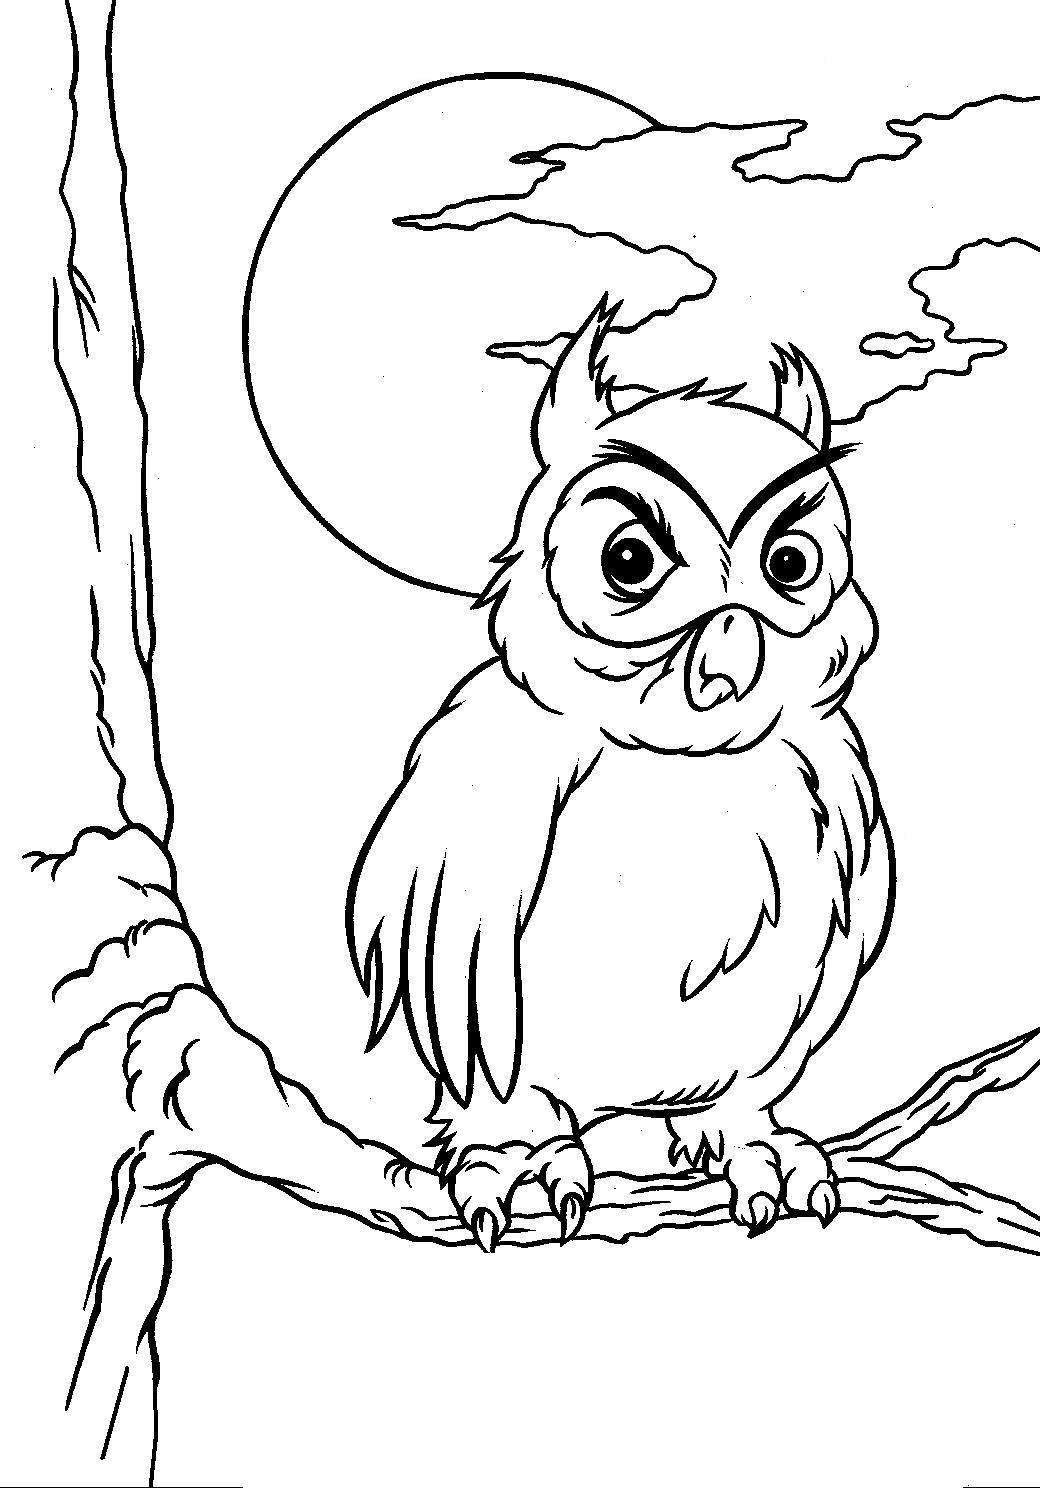 Halloween Coloring Pages Halloween Owl Coloring Pages For Kids